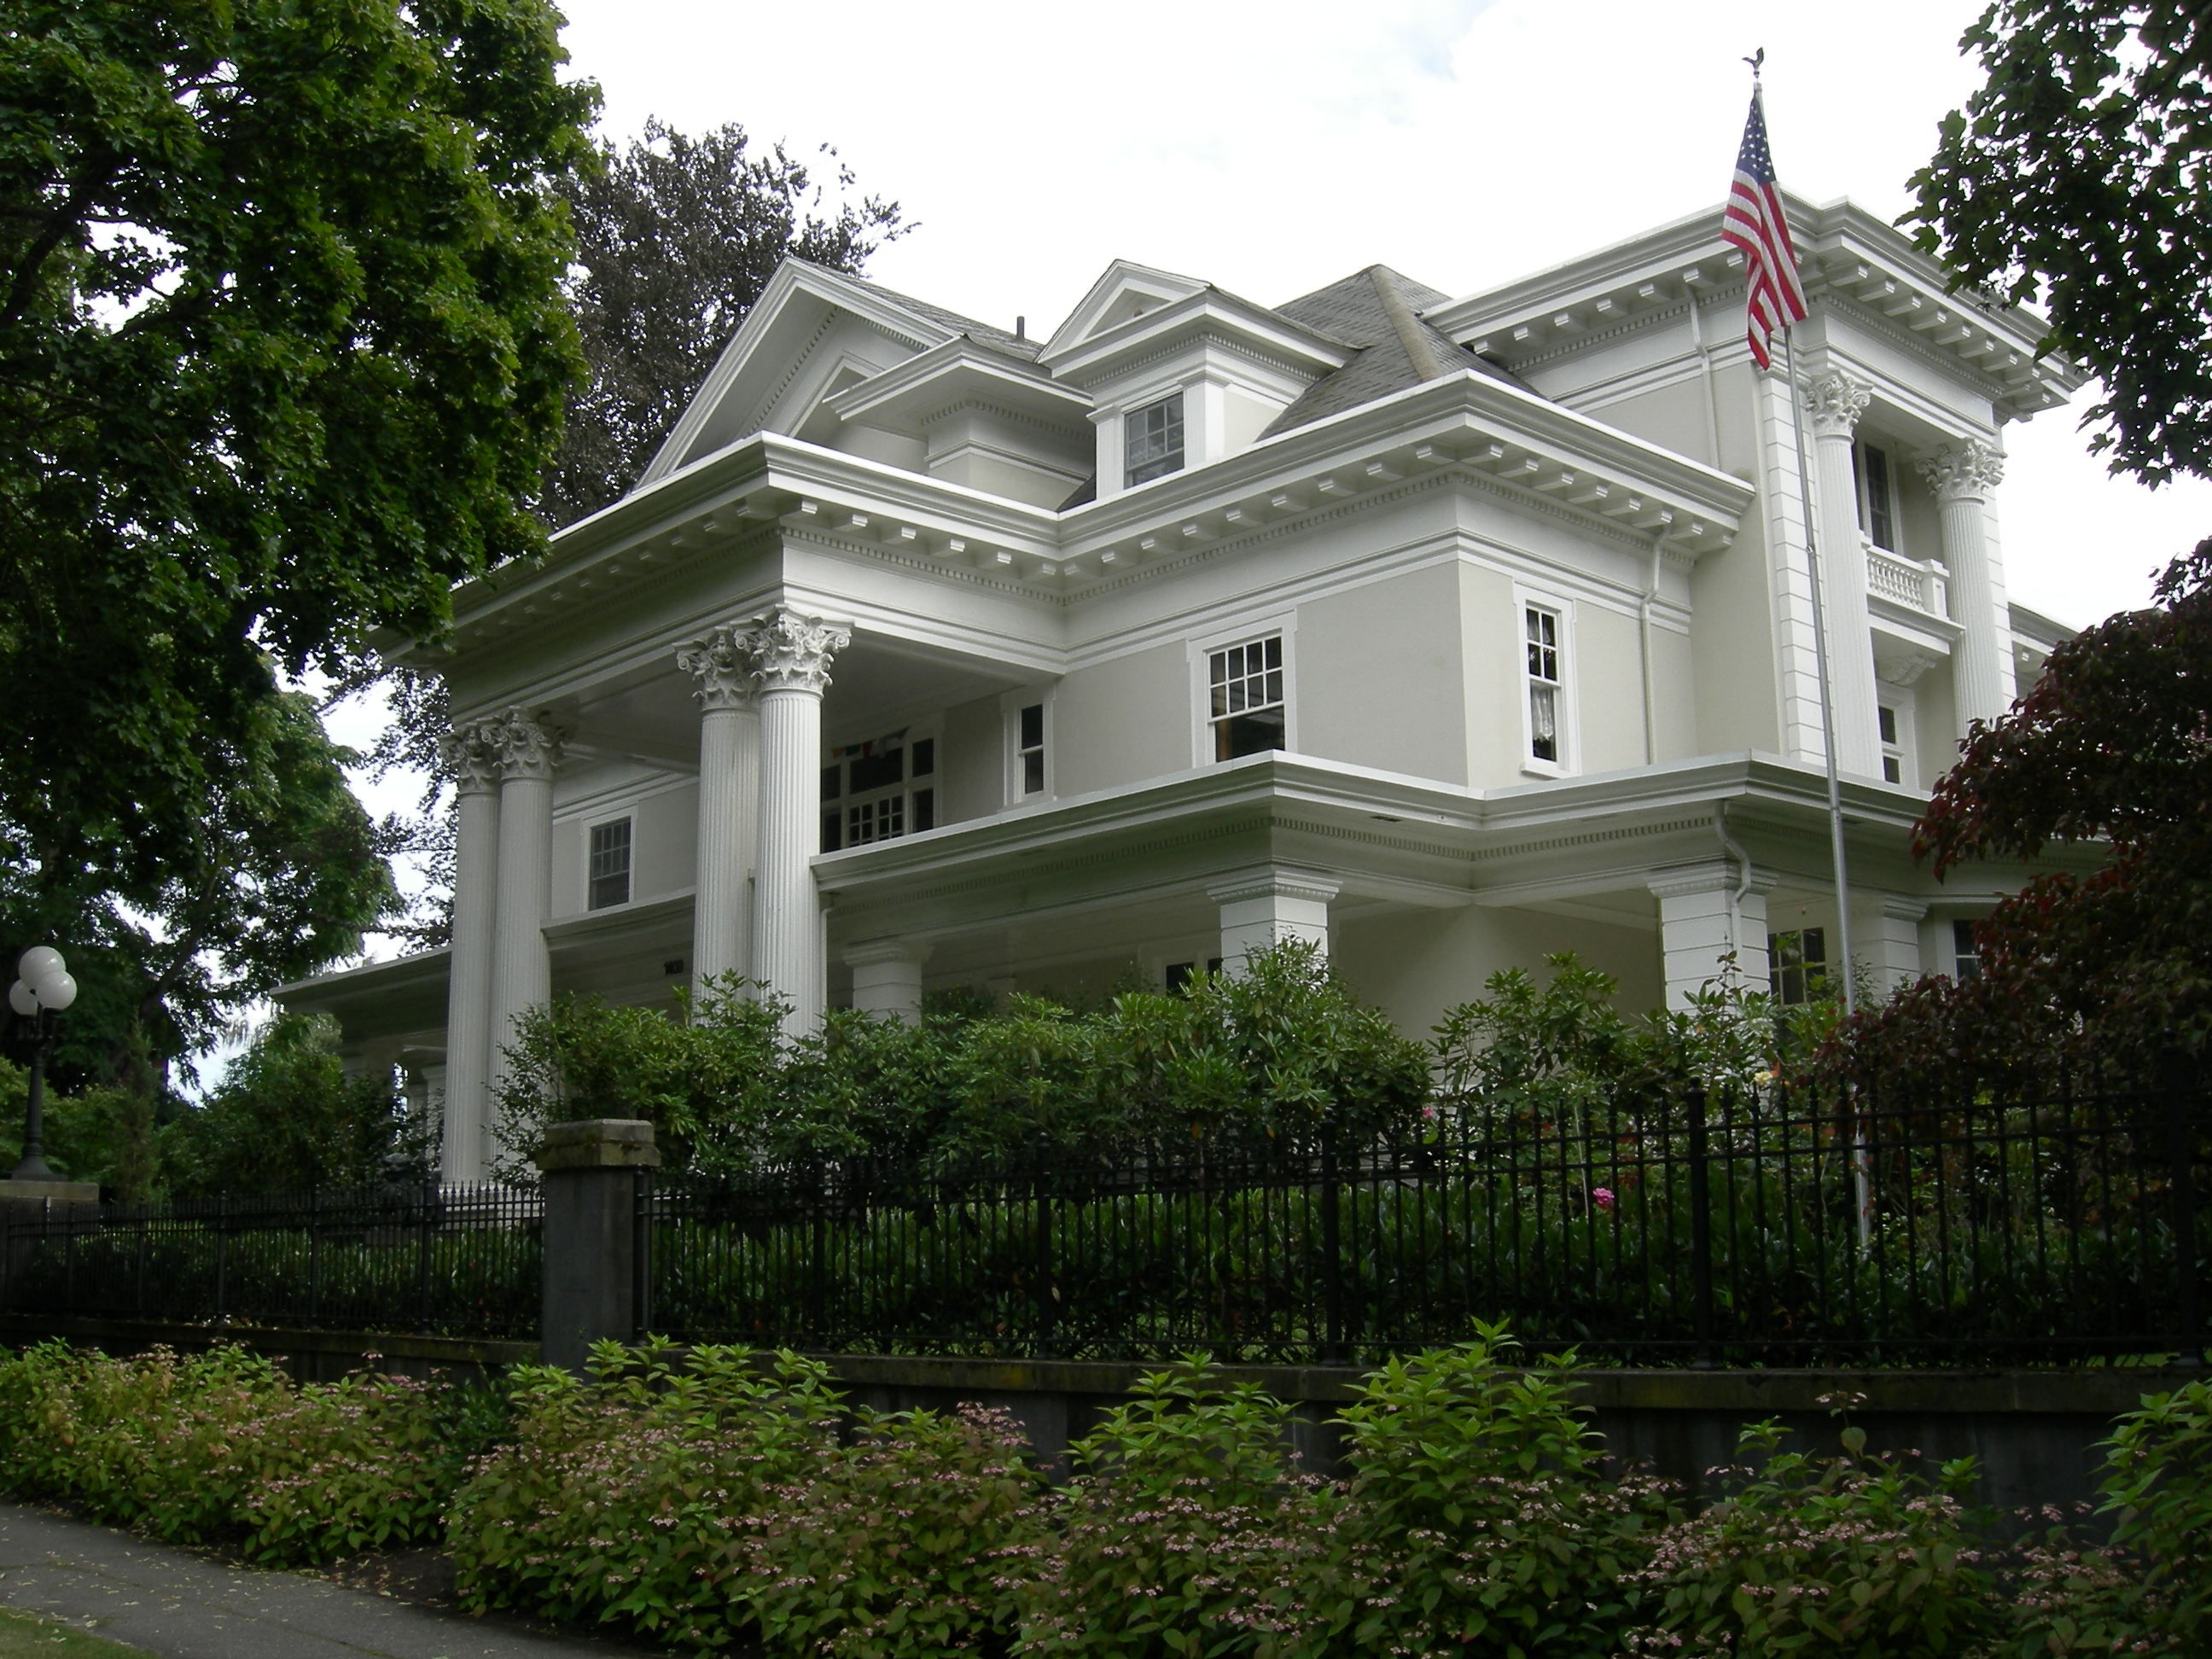 A modern recreation of an old photograph of the Parker-Fersen mansion, emphasizing its grandeur.